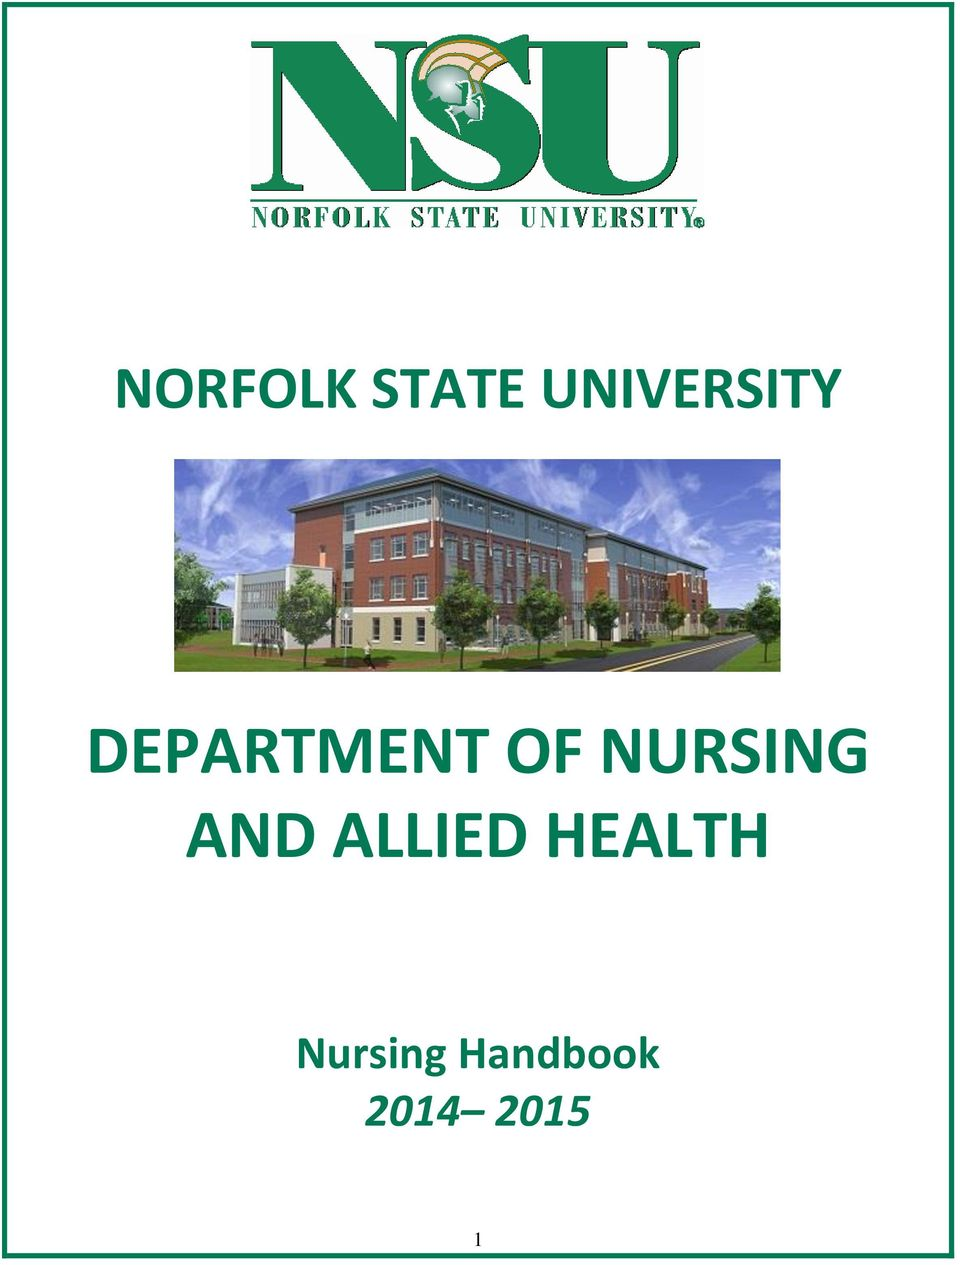 OF NURSING AND ALLIED